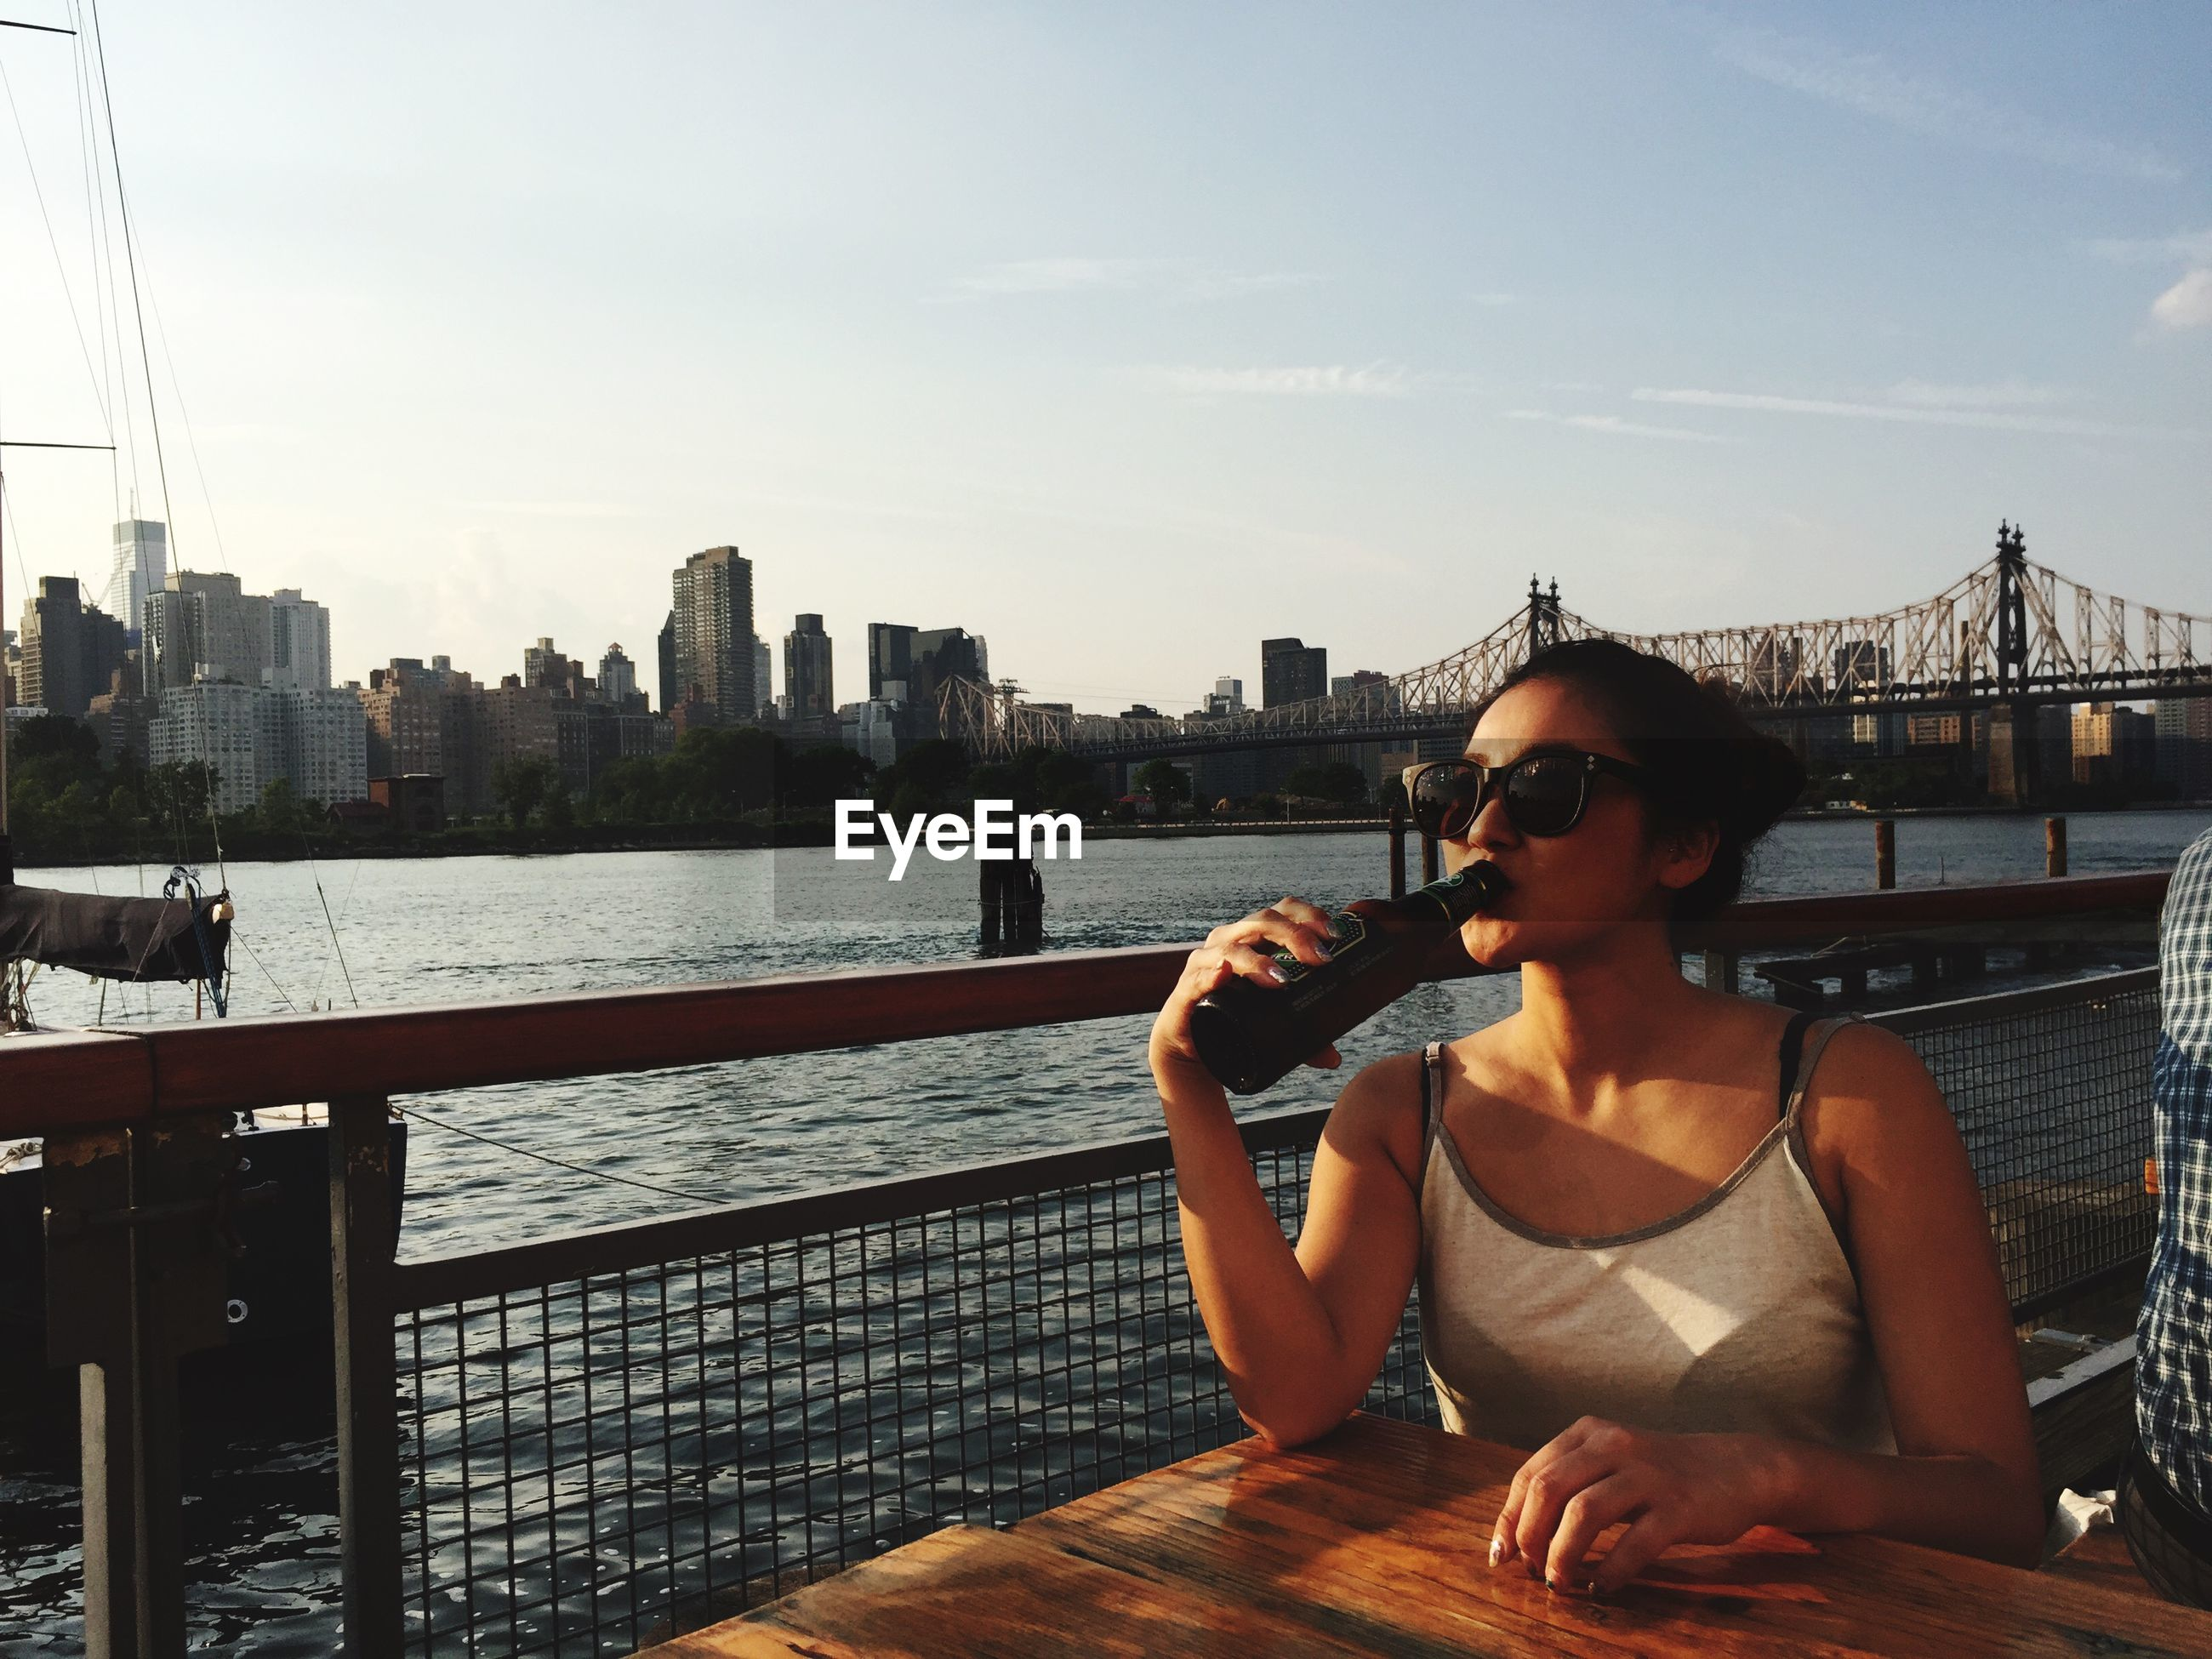 water, lifestyles, architecture, built structure, building exterior, young adult, city, leisure activity, railing, river, person, sky, young women, sitting, casual clothing, cityscape, connection, standing